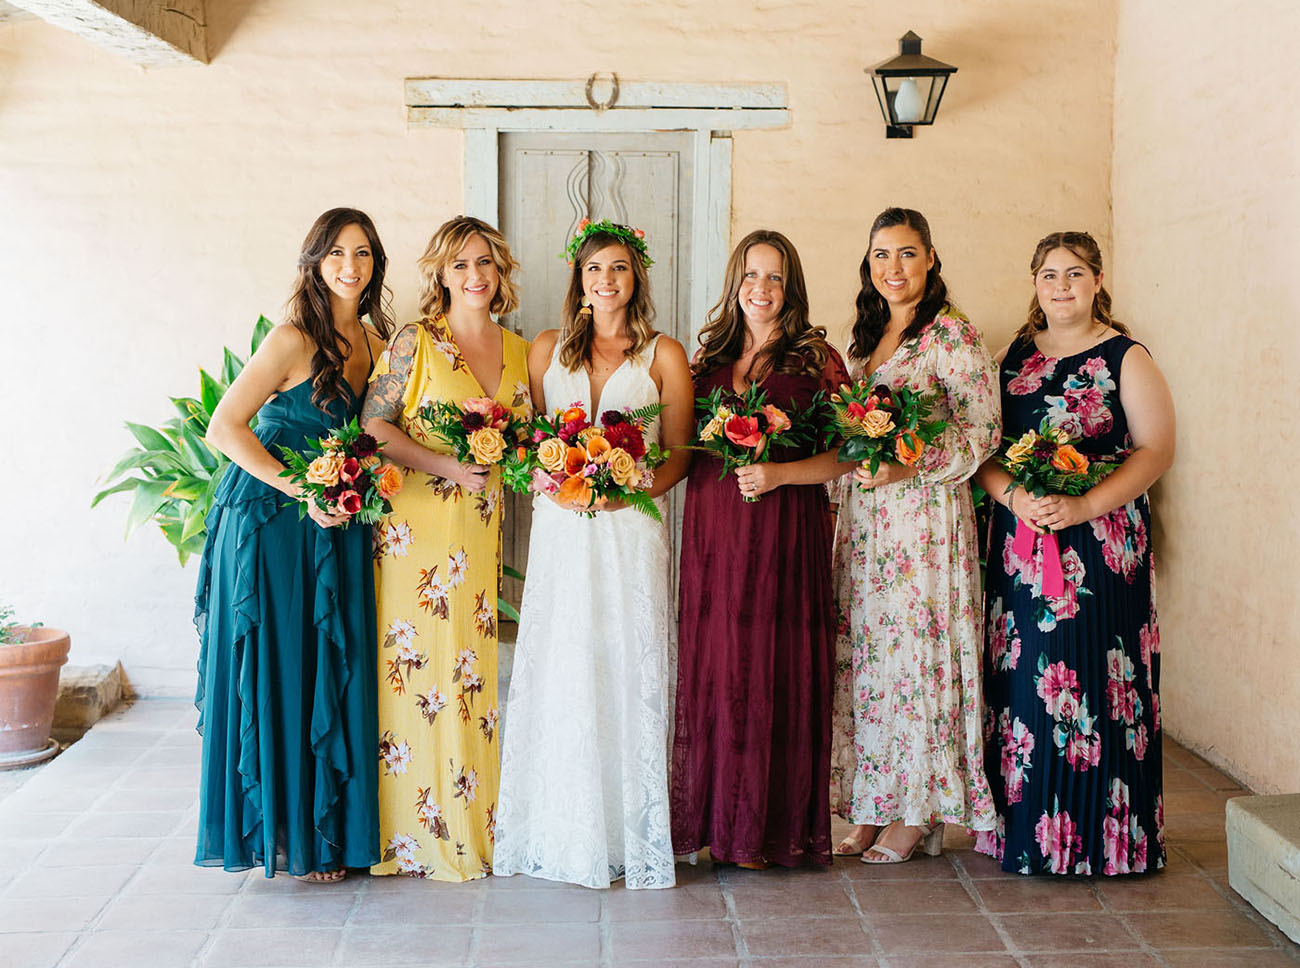 The bridesmaids were wearing mismatched floral and solid dresses